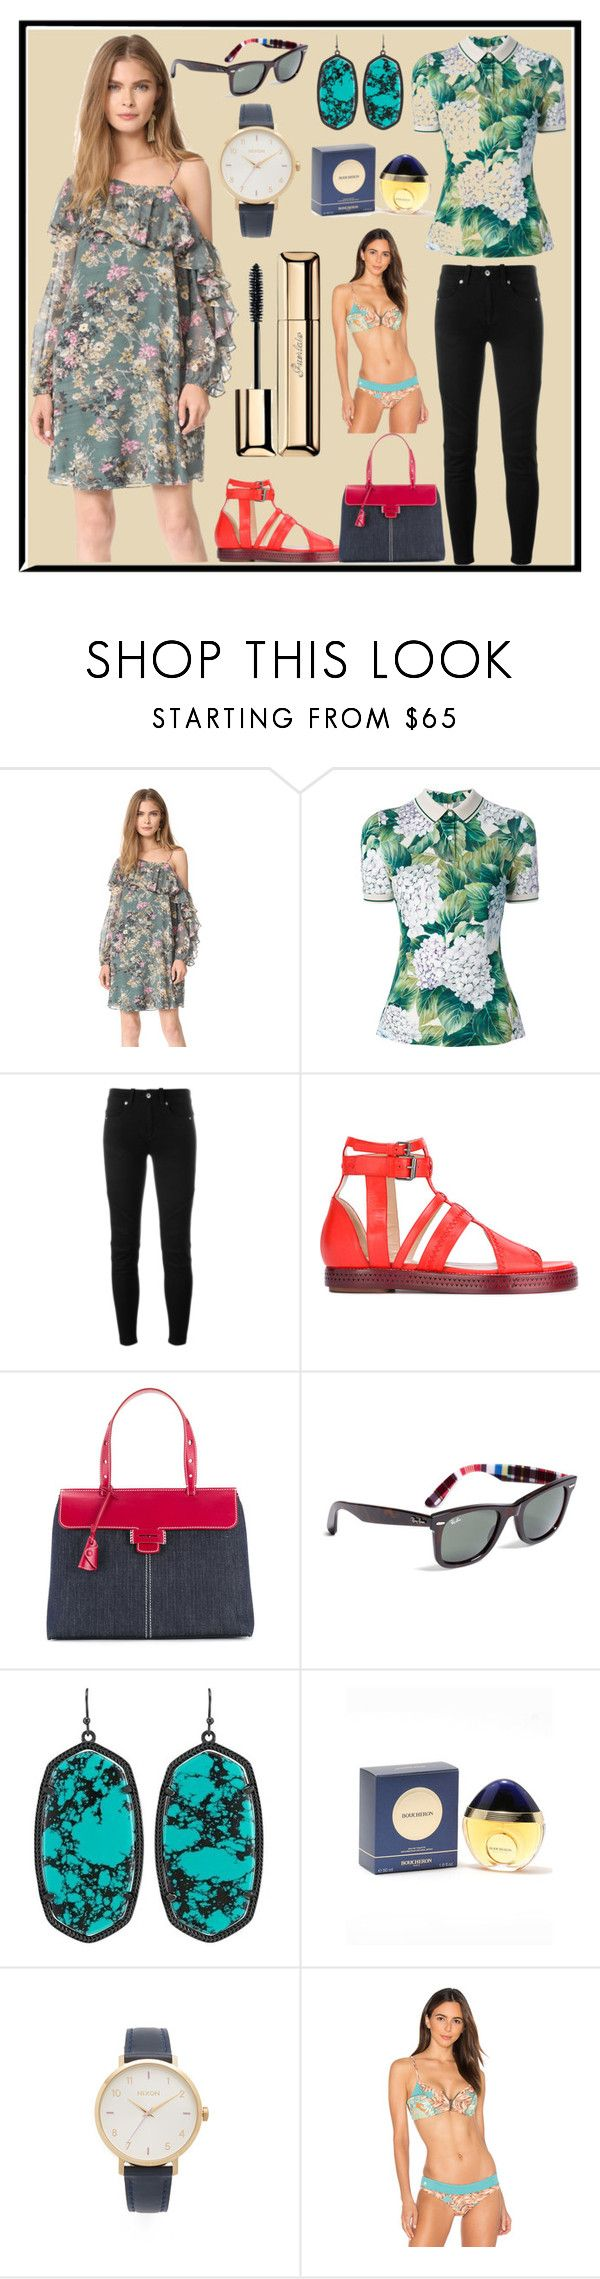 """""""Forgot Old Look"""" by cate-jennifer ❤ liked on Polyvore featuring Haute Hippie, Dolce&Gabbana, Diesel, E L L E R Y, Myriam Schaefer, Brooks Brothers, Kendra Scott, Boucheron, Nixon and Maaji"""